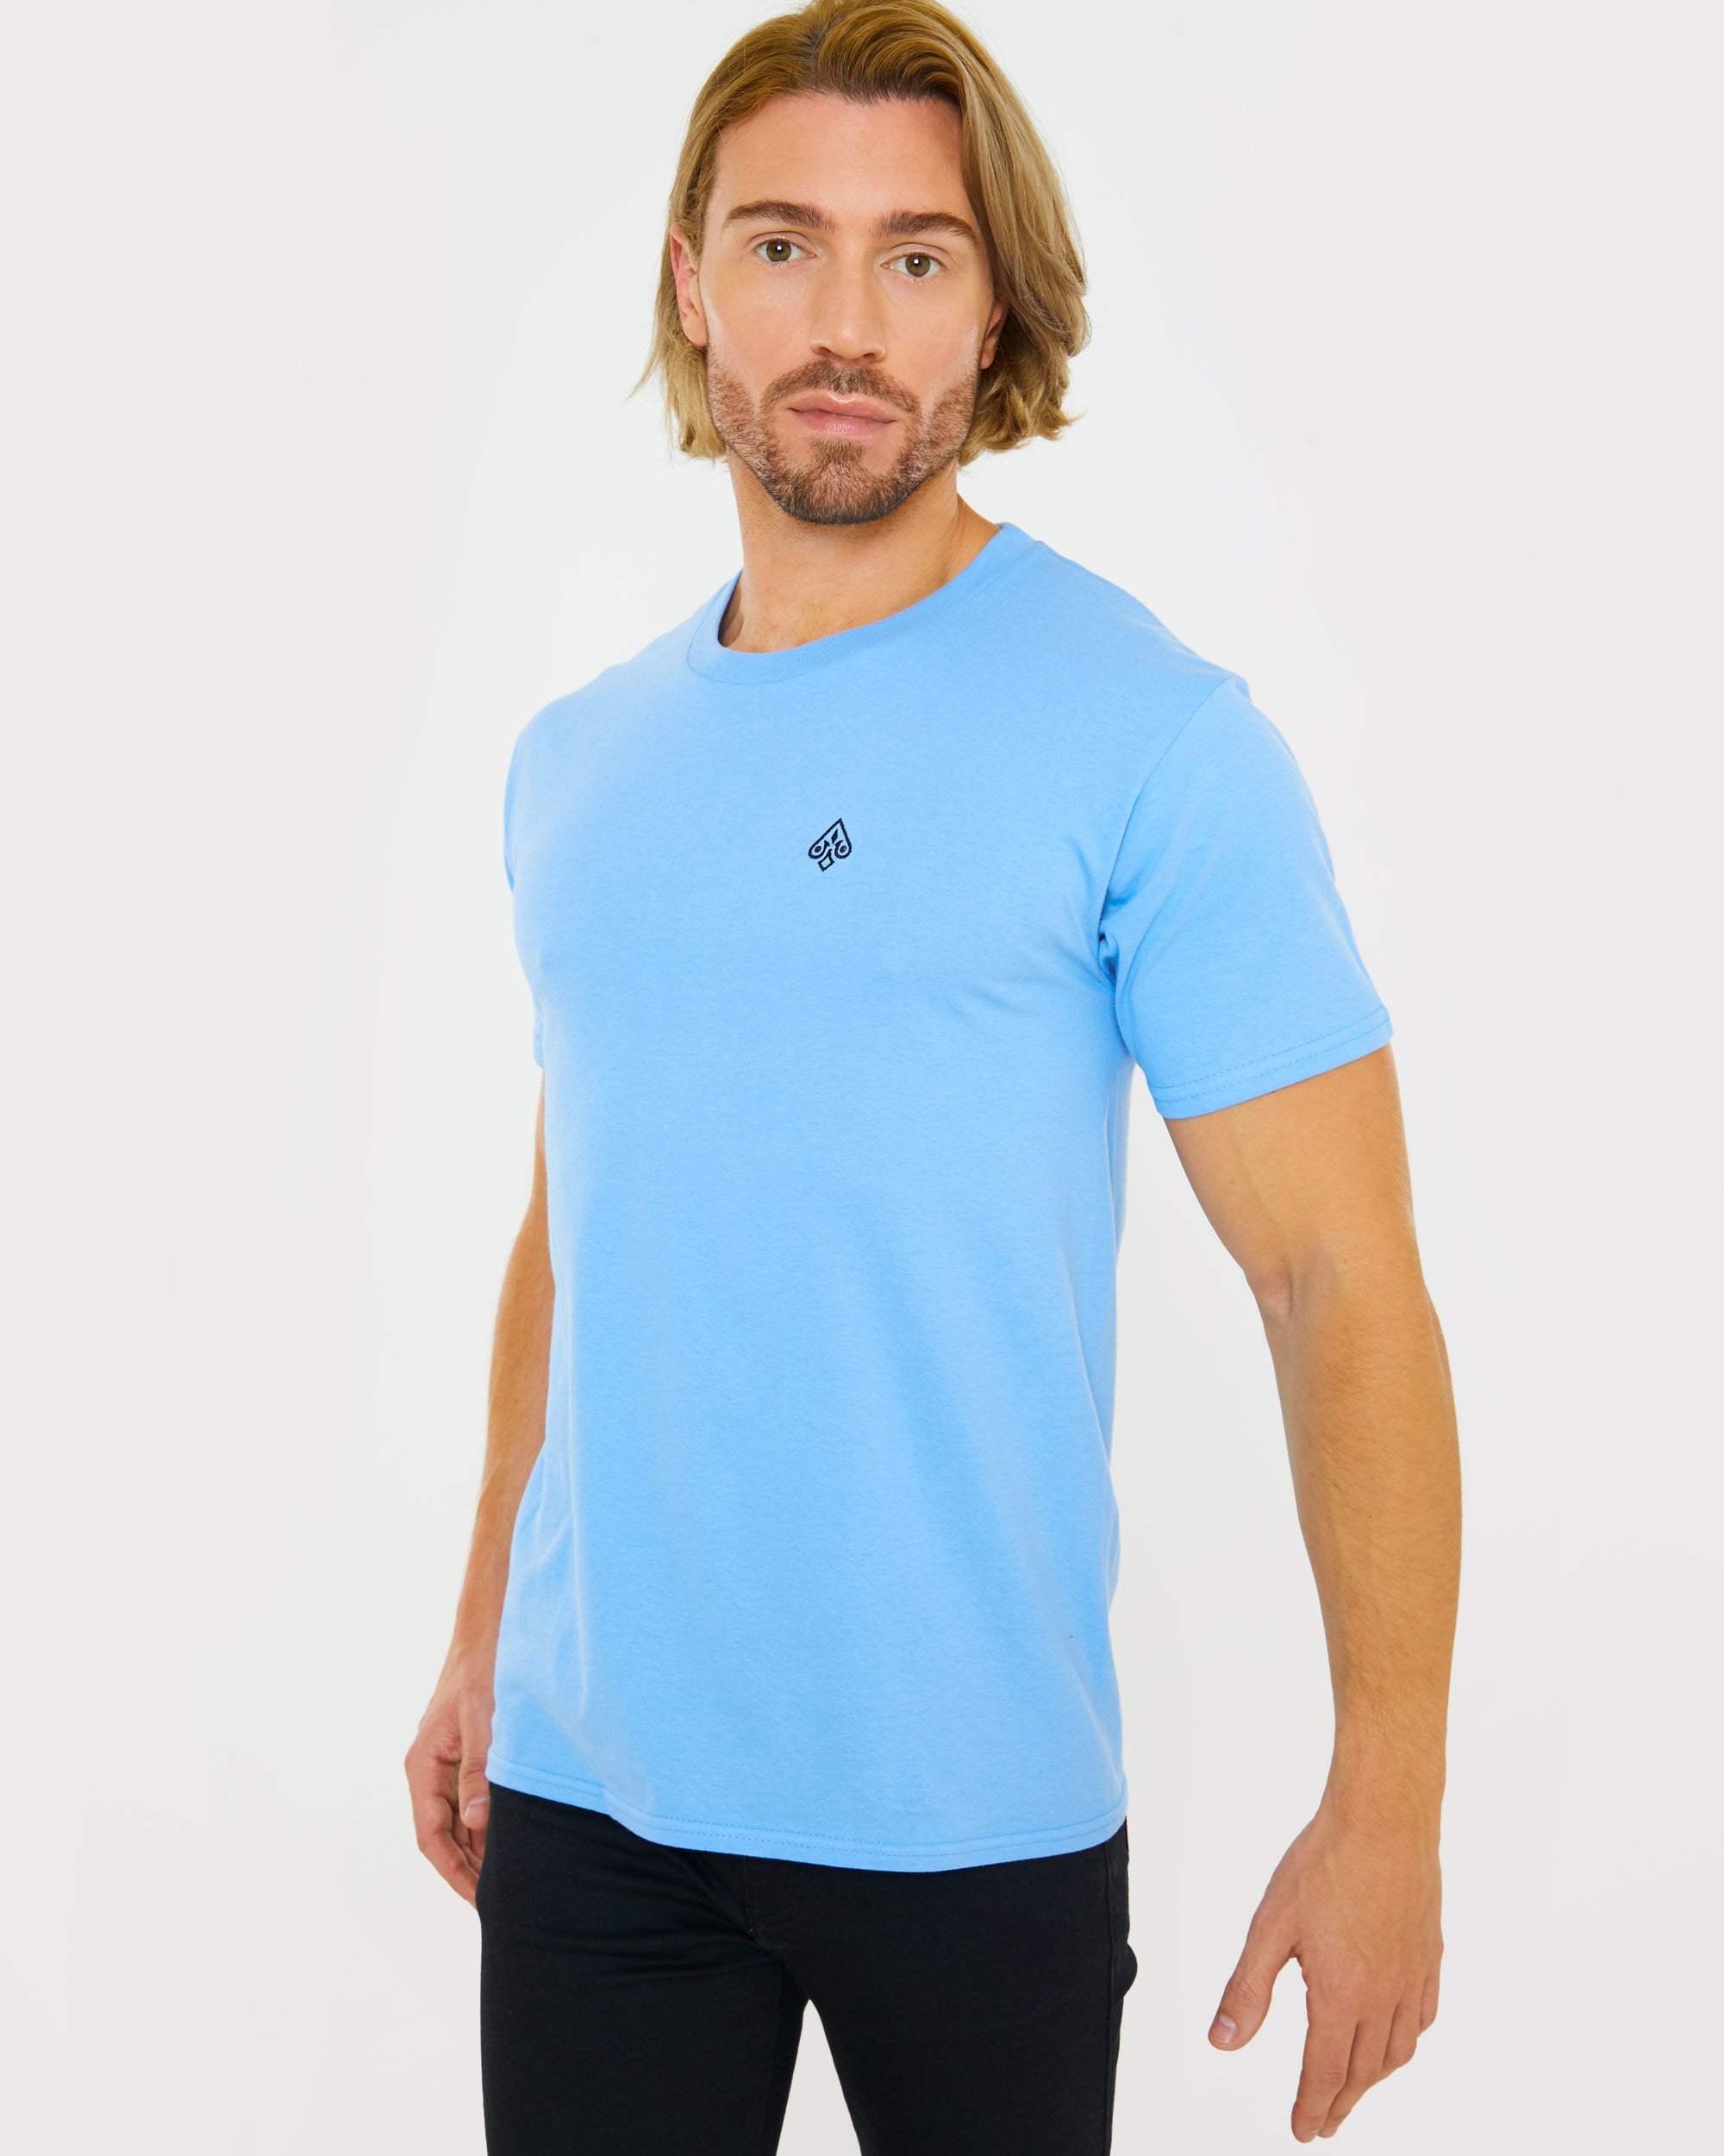 Blue T-Shirt For Men/Women in London